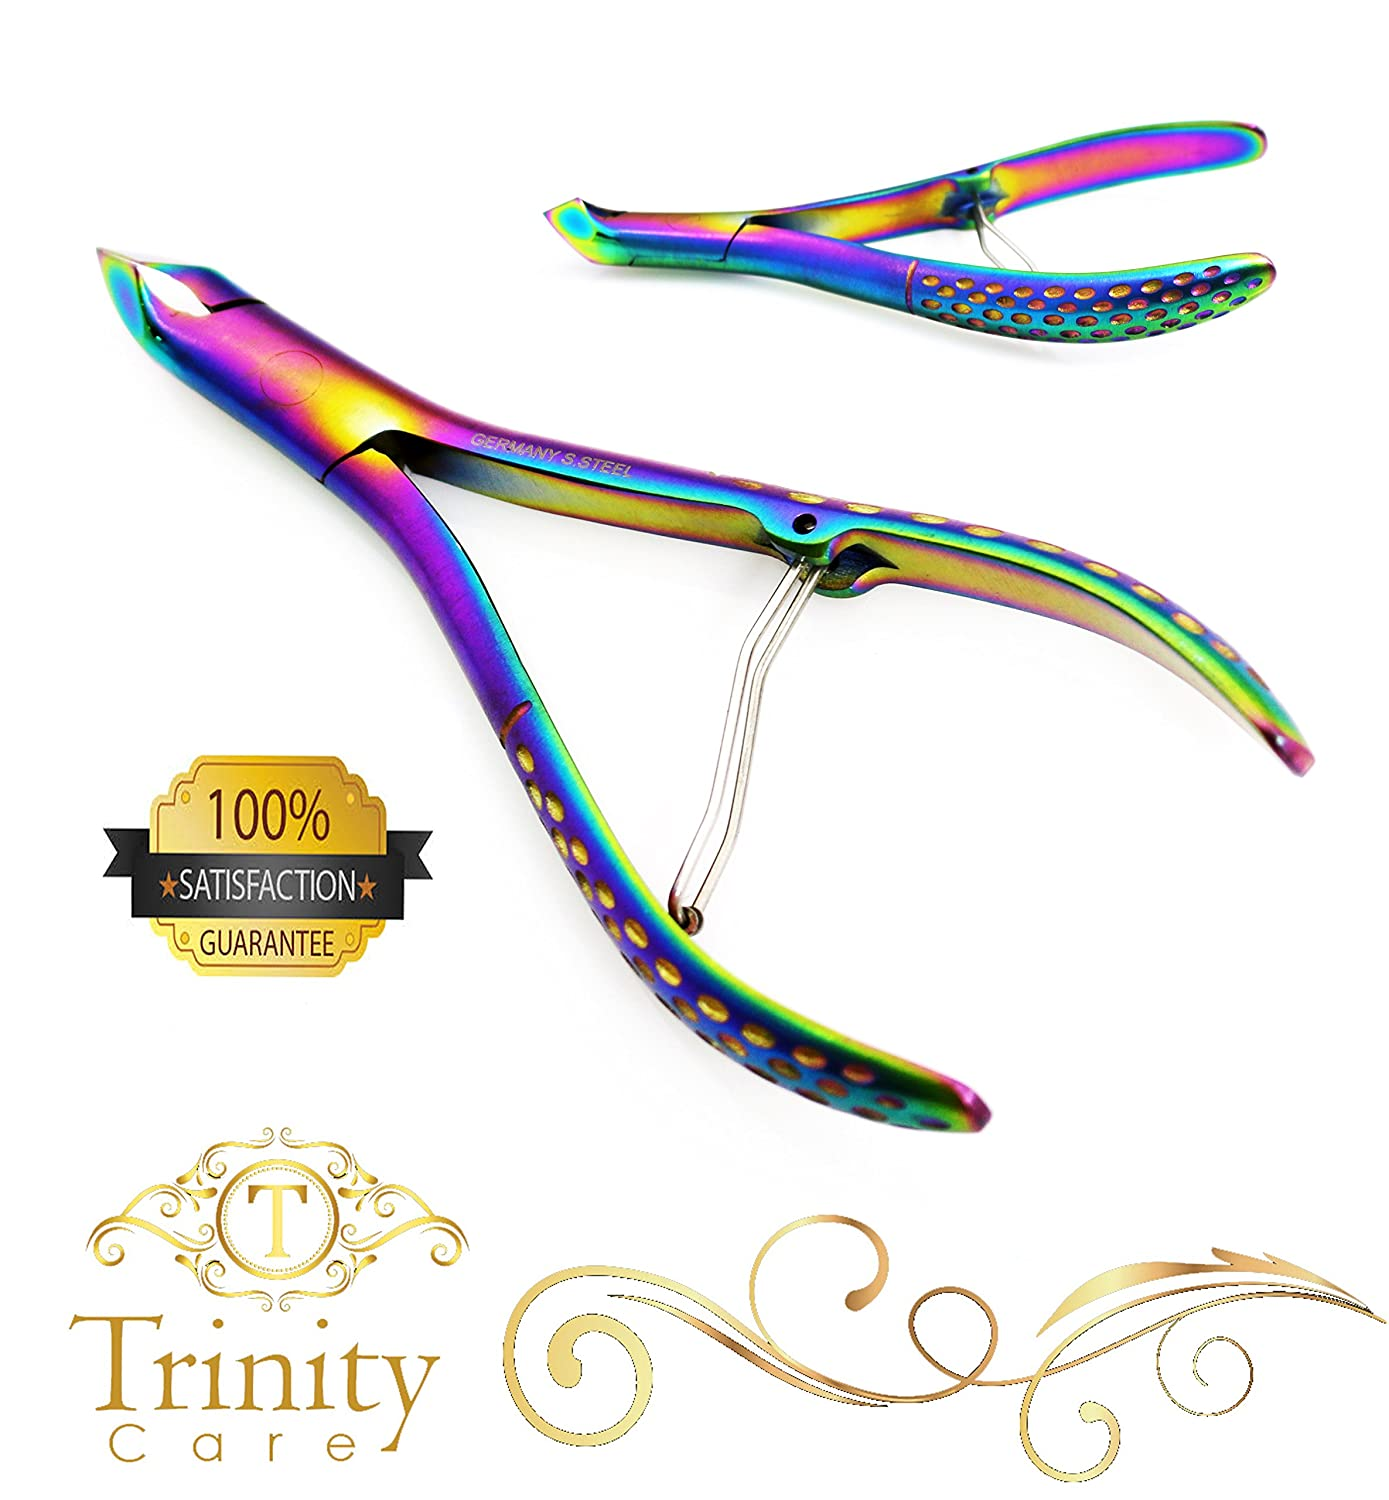 GERMAN Steel CURVED Cuticle Nipper Titanium Satin Cutter Remover Trimmer RRP £20 (TITANIUM) TRINITY CARE PRODUCTS LTD